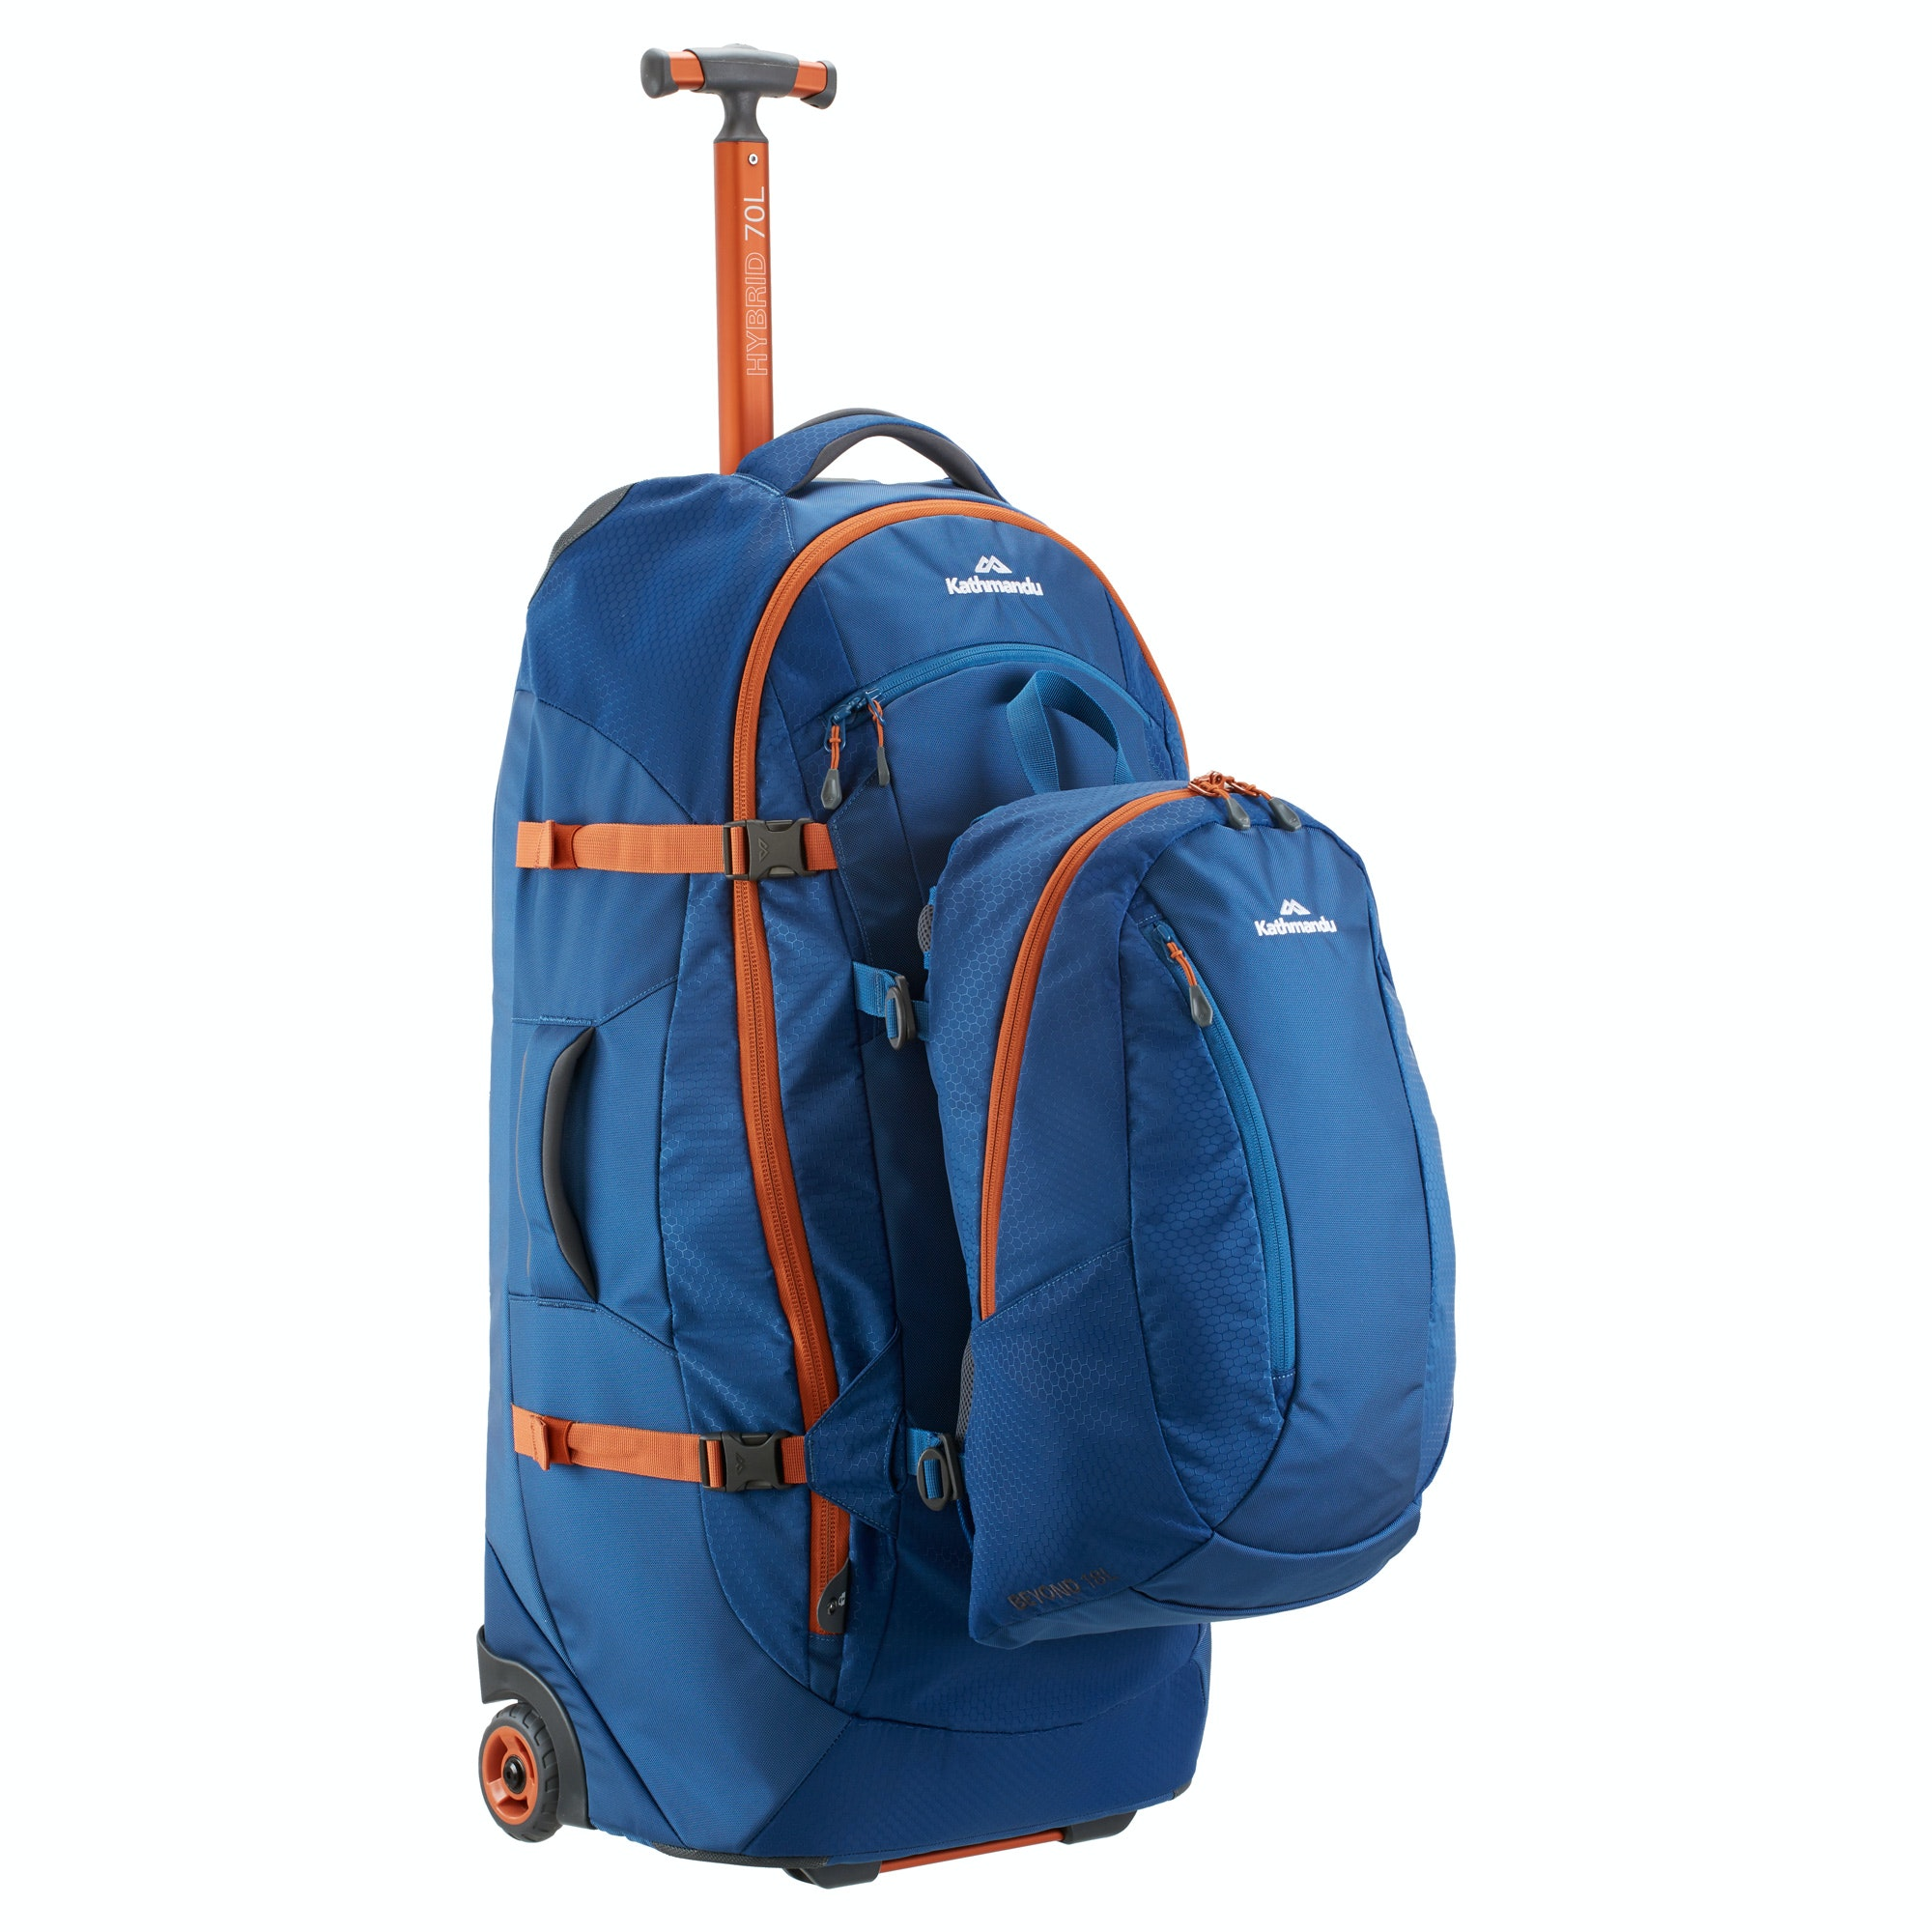 Hybrid 70L Backpack Harness Wheeled Luggage Trolley v3 - Mid Blue